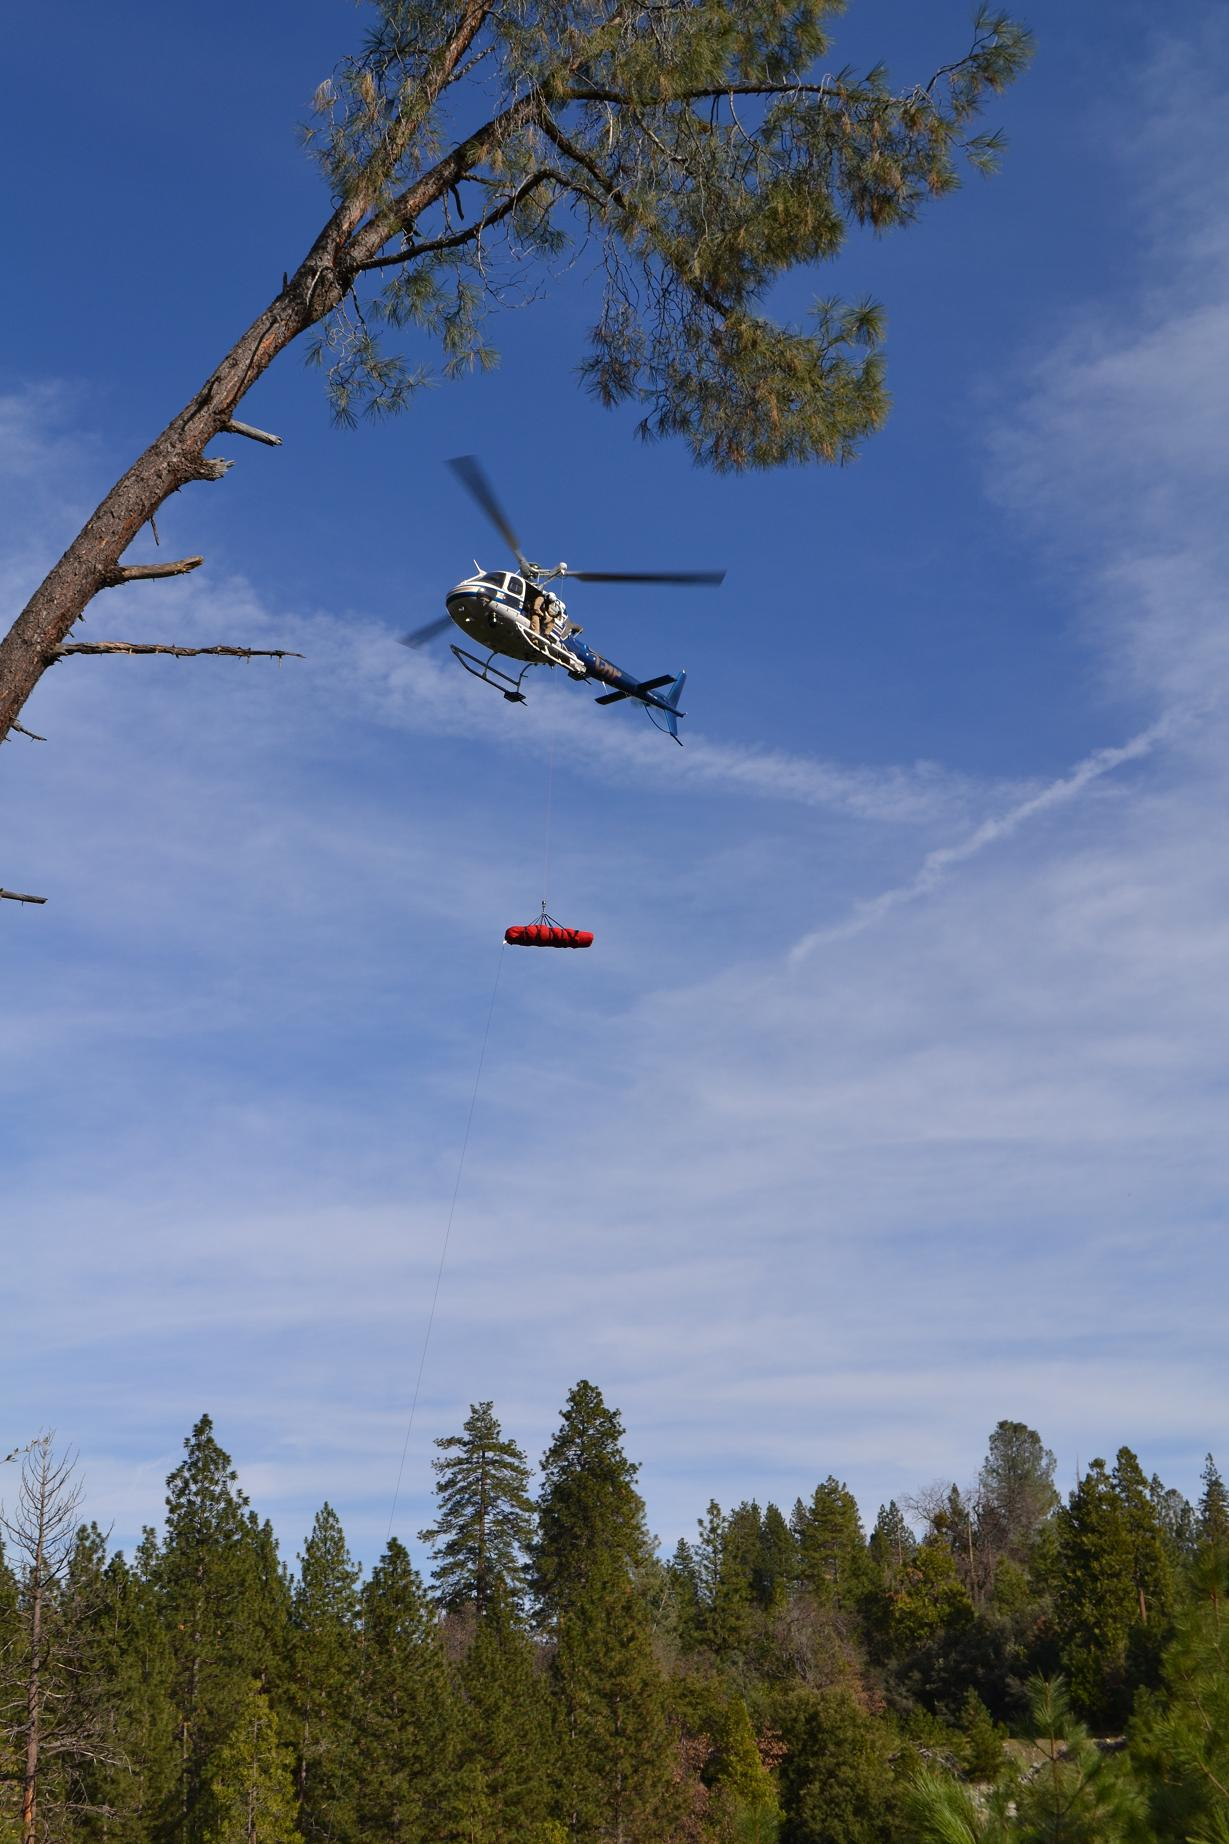 Helicopter Lifting Accident Victim - photo by Gina Clugston